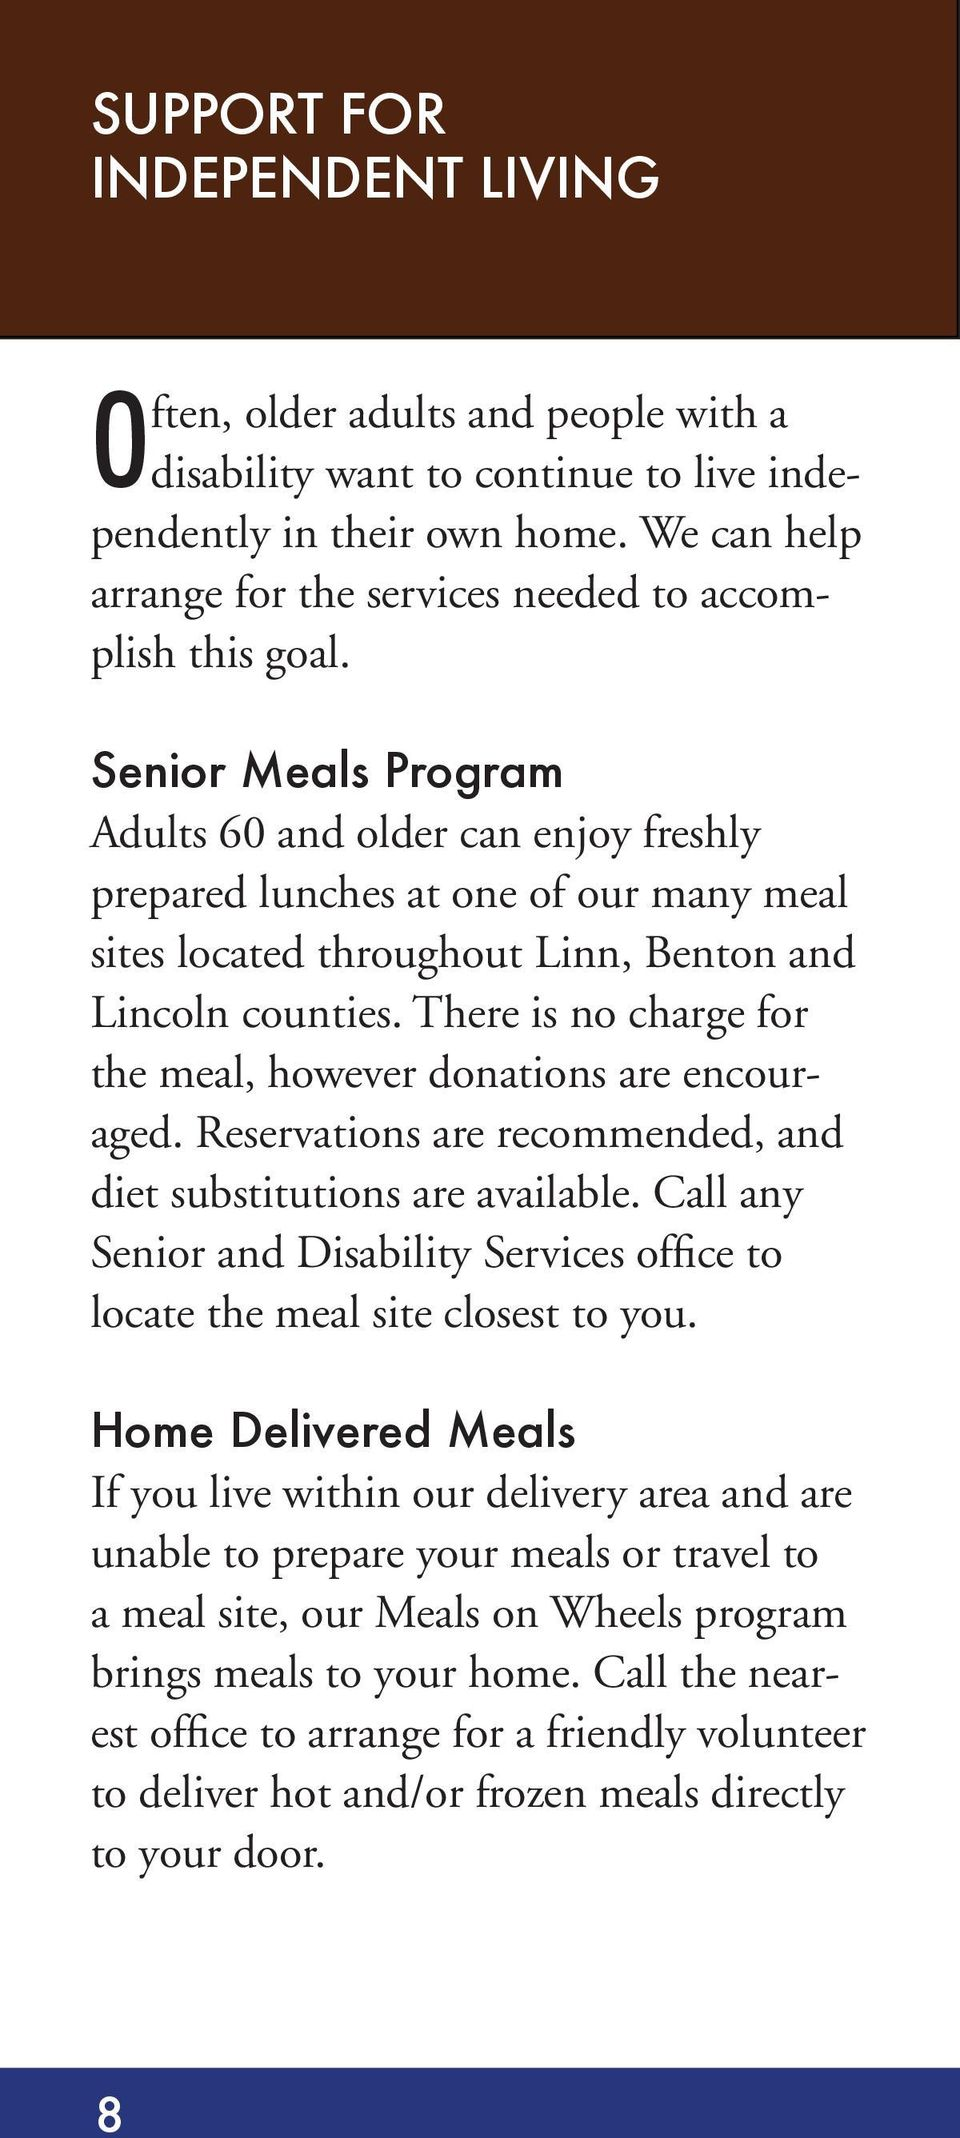 Senior Meals Program Adults 60 and older can enjoy freshly prepared lunches at one of our many meal sites located throughout Linn, Benton and Lincoln counties.